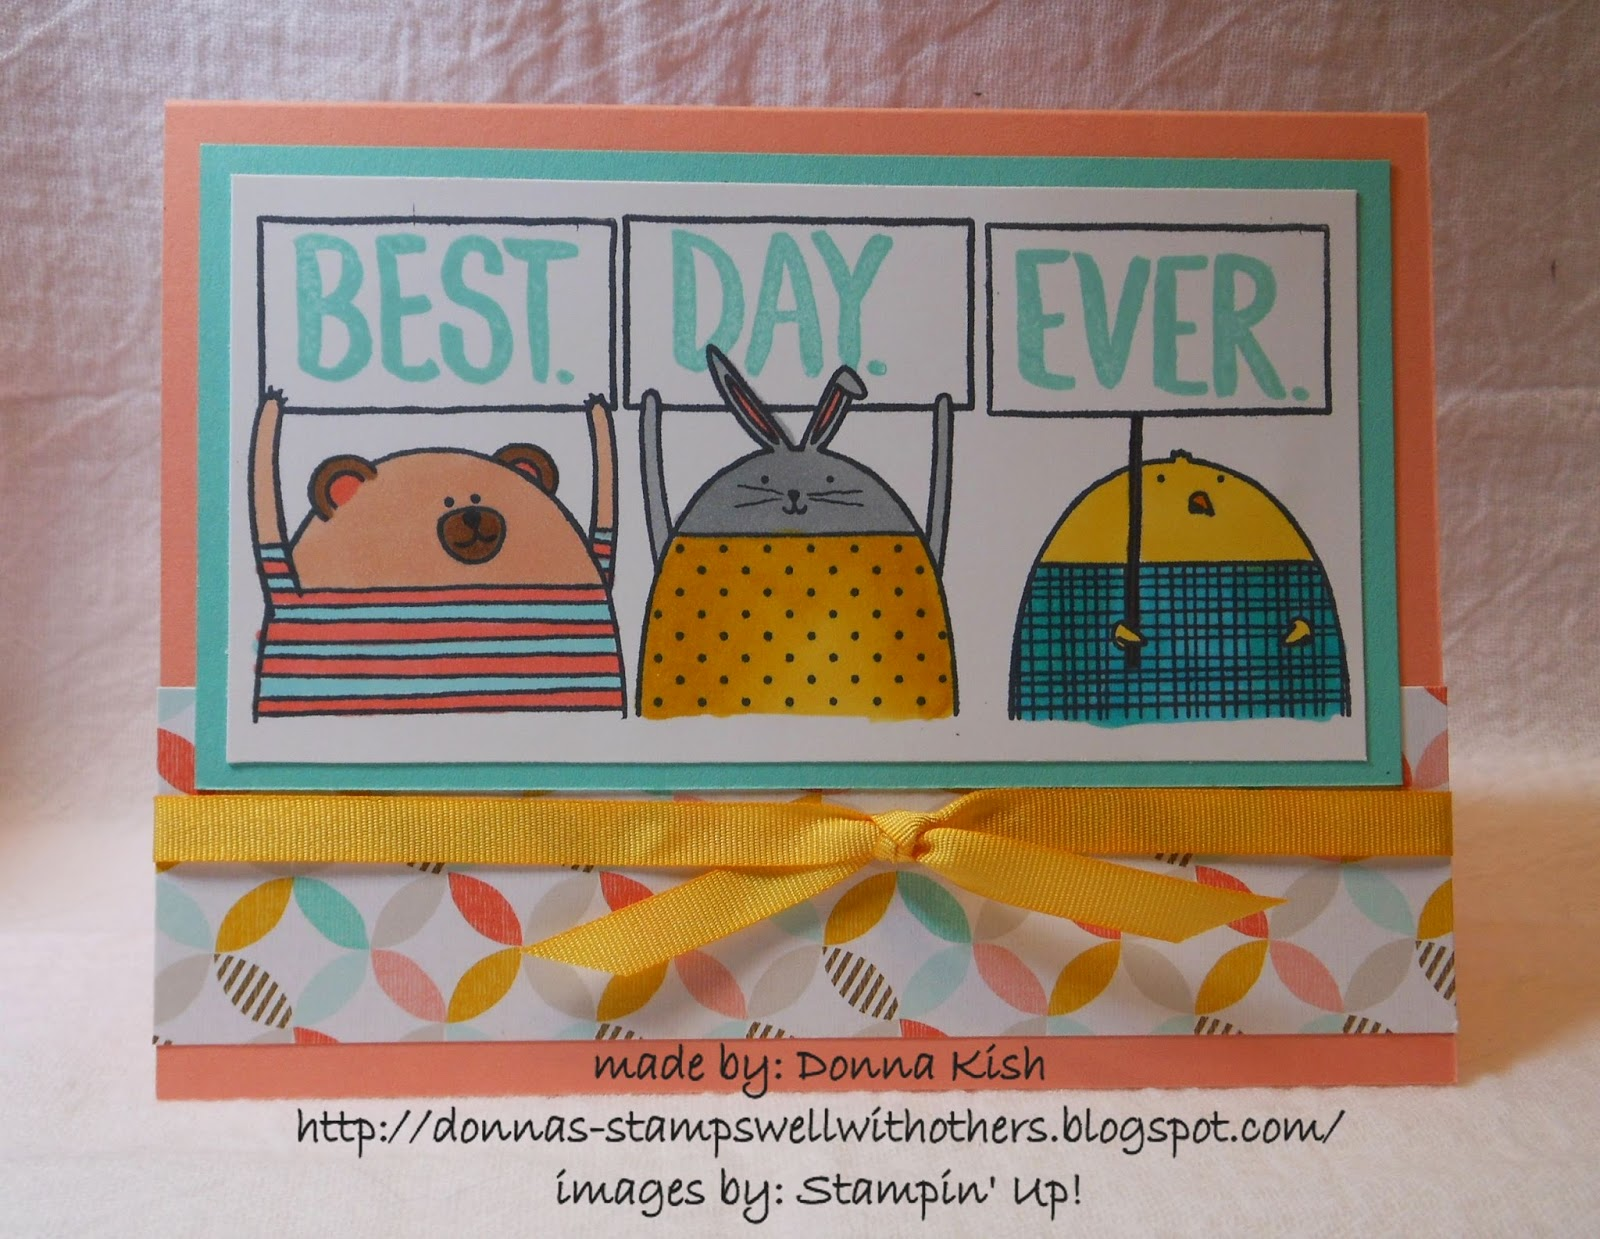 http://donnas-stampswellwithothers.blogspot.com/2015/01/best-day-ever-for-cheerful-critters.html